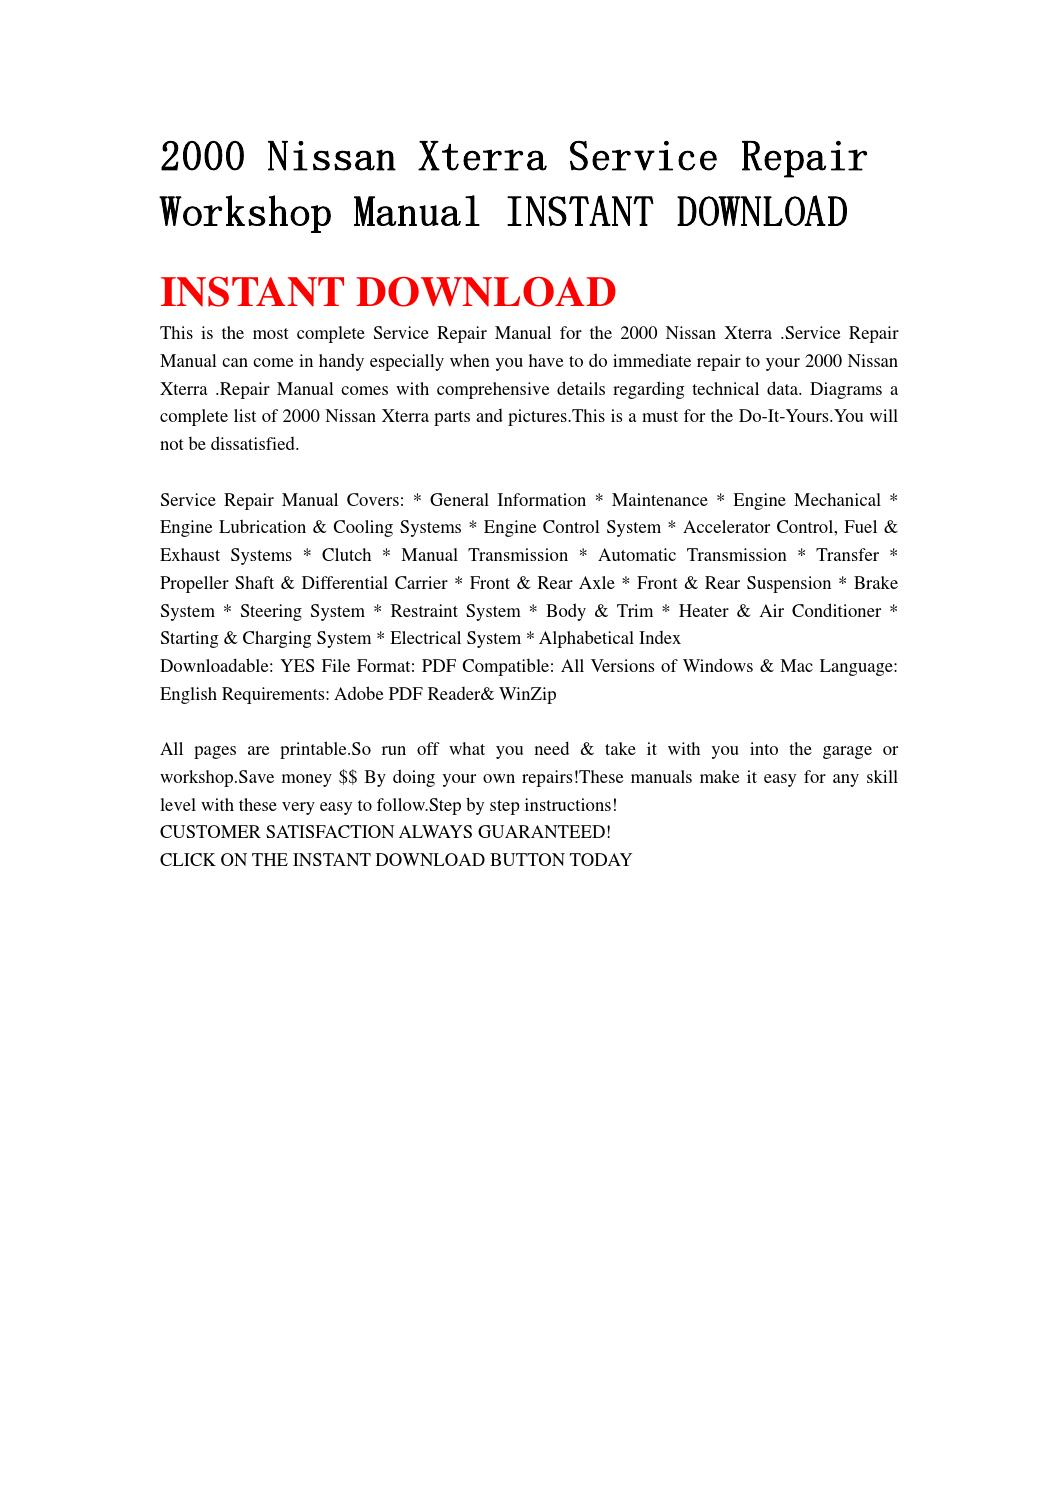 2000 nissan xterra service repair workshop manual instant download by  jnshefjsne - issuu